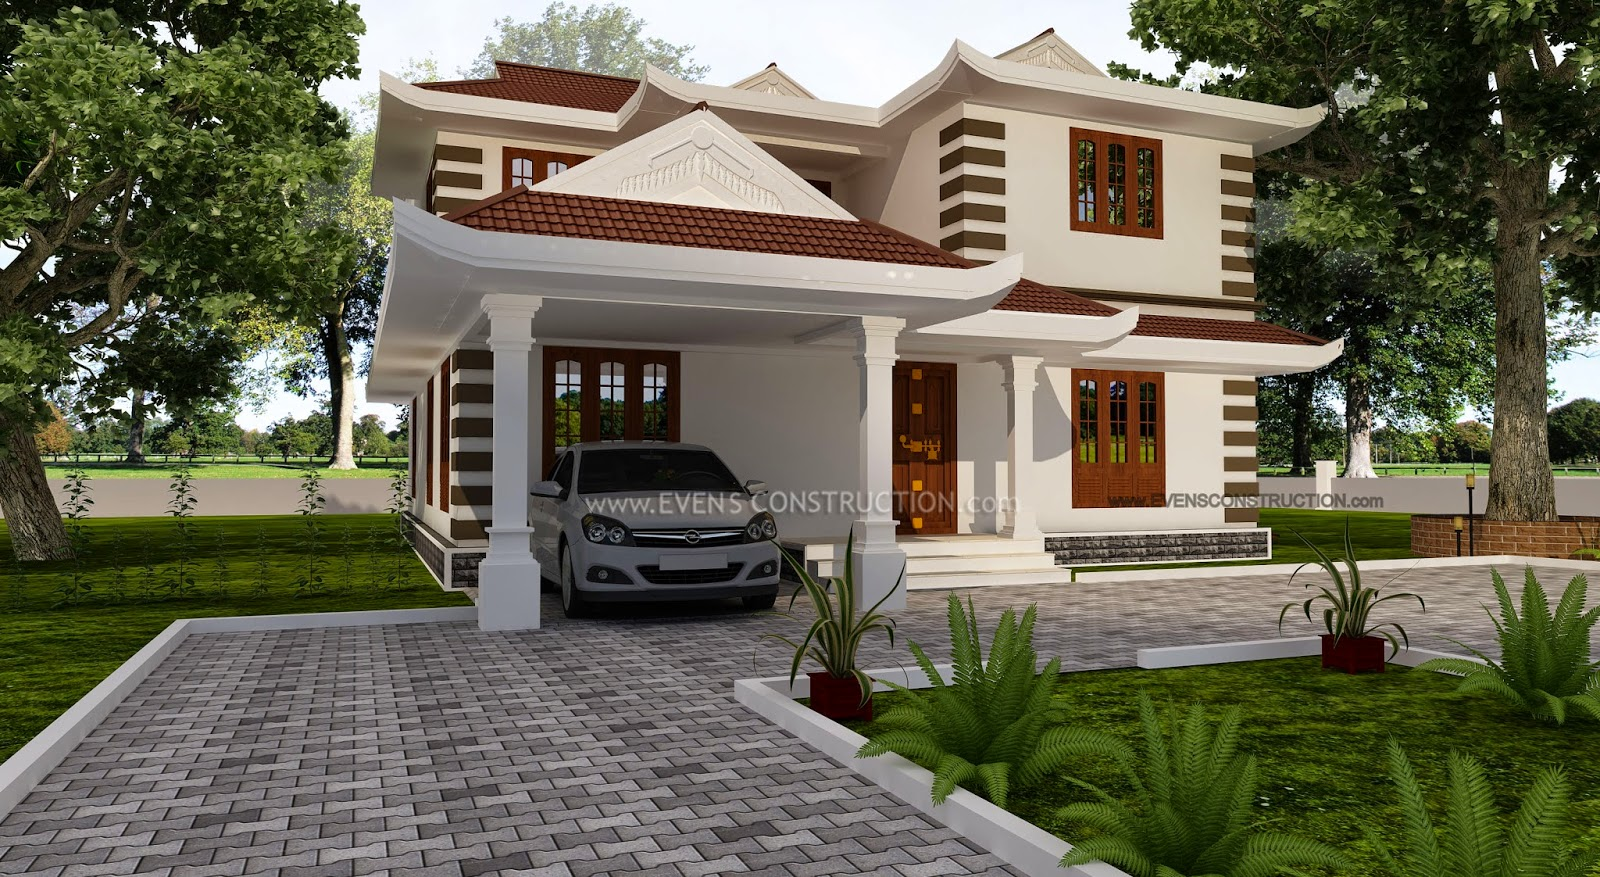 House Boundary Wall Design In Kerala on